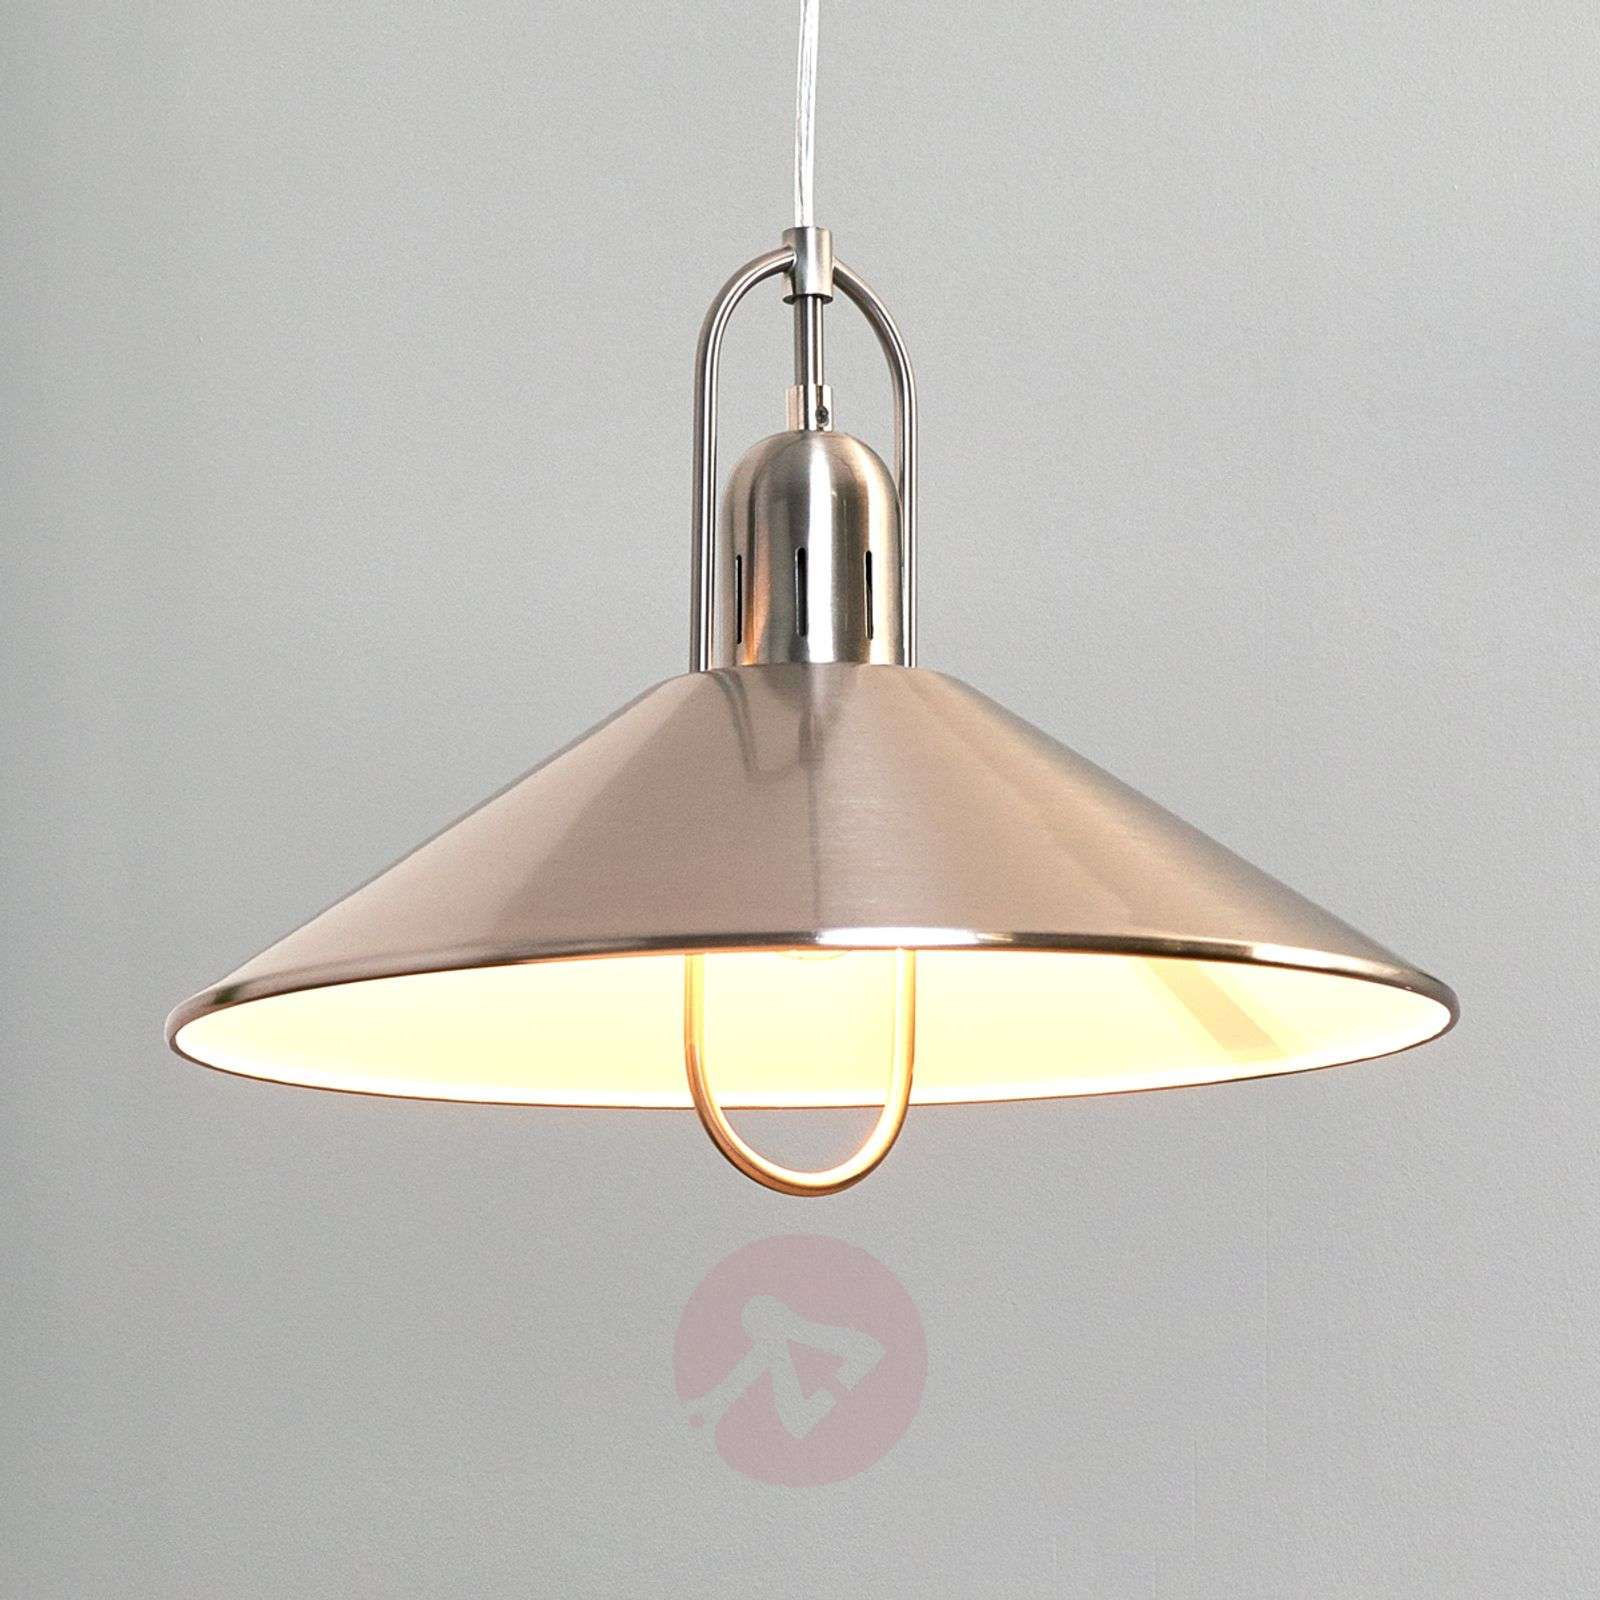 Extraordinary marco hanging light lights aloadofball Choice Image